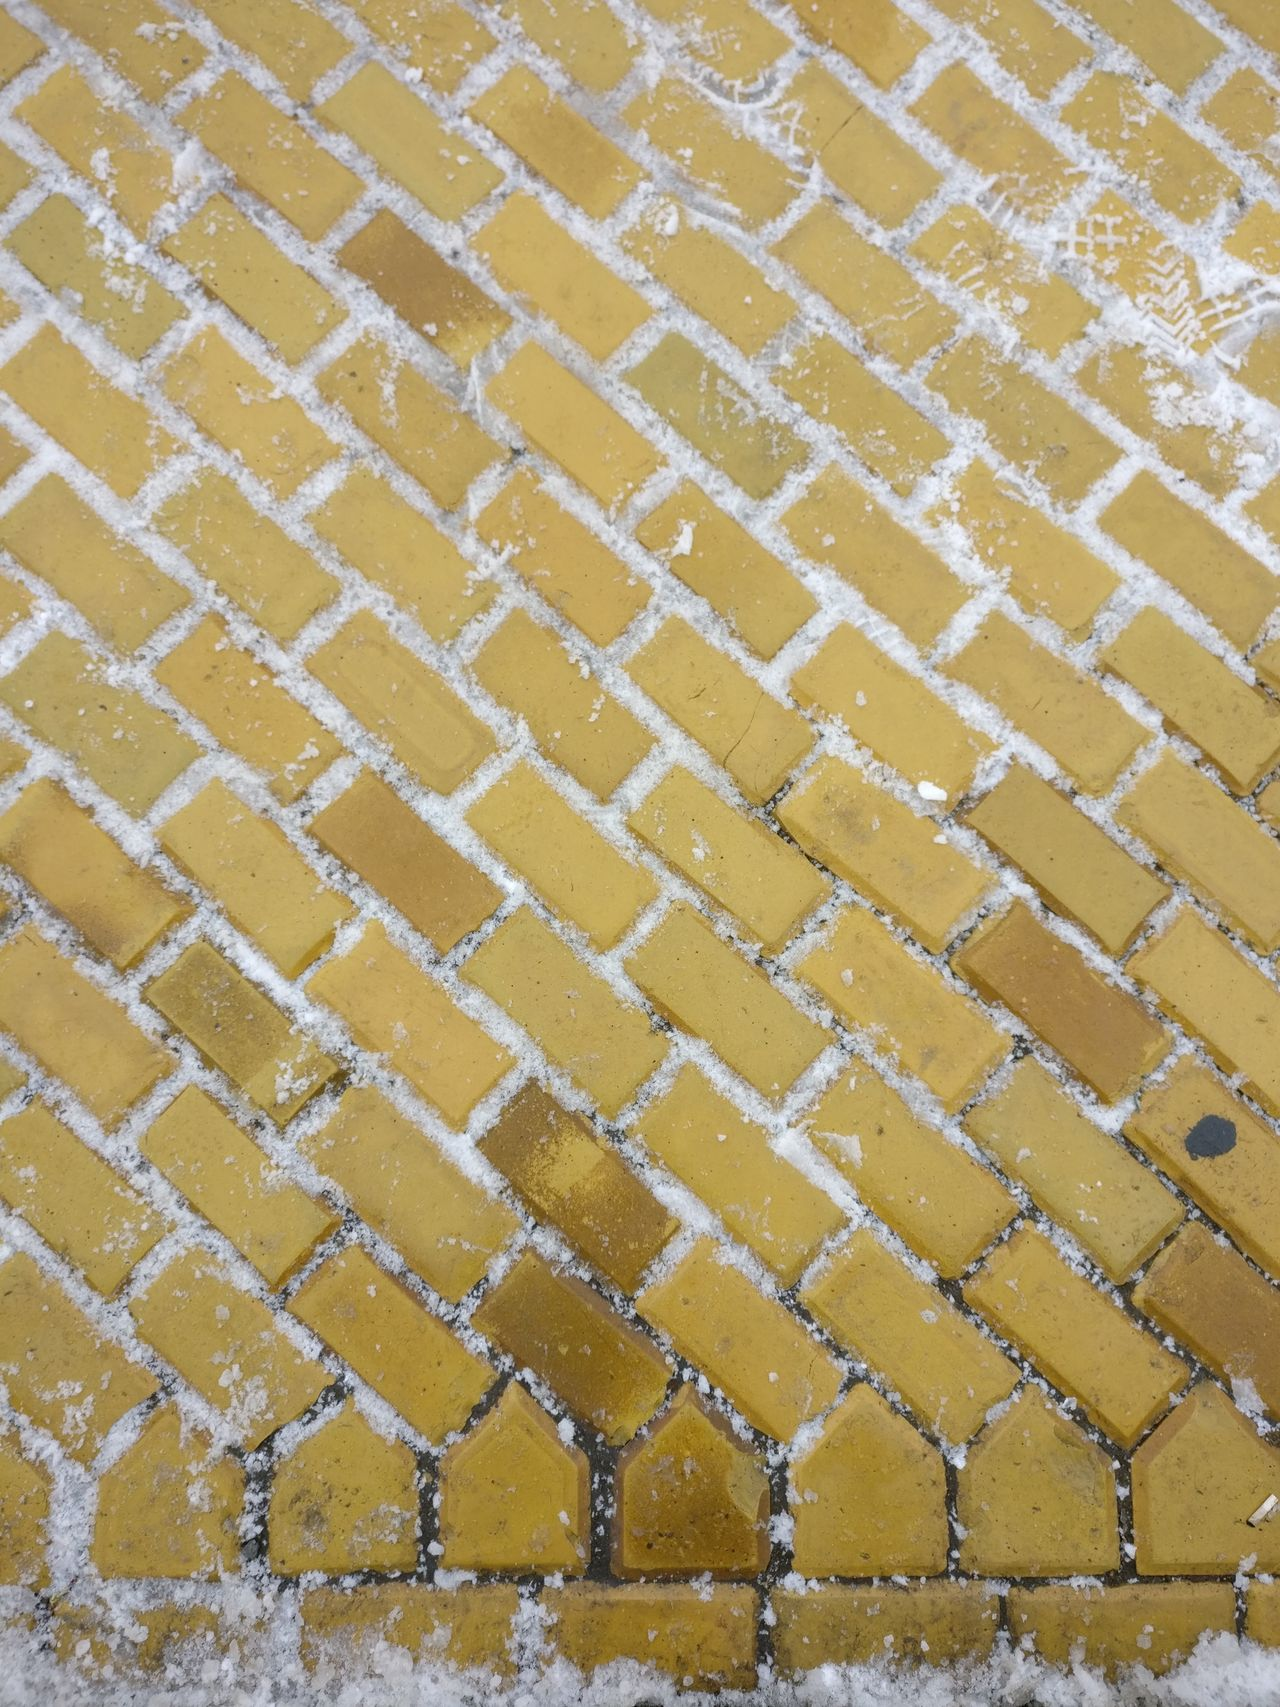 Yellow brick road. Backgrounds Full Frame Pattern High Angle View No People Outdoors Nature Day Close-up Beauty In Nature Freshness Yellow Brick Road Yellow Snow Road Path Travel Destinations Oneplusphotograpgy Travel History Cold Temperature City Capital Cities  Gold Colored Adapted To The City